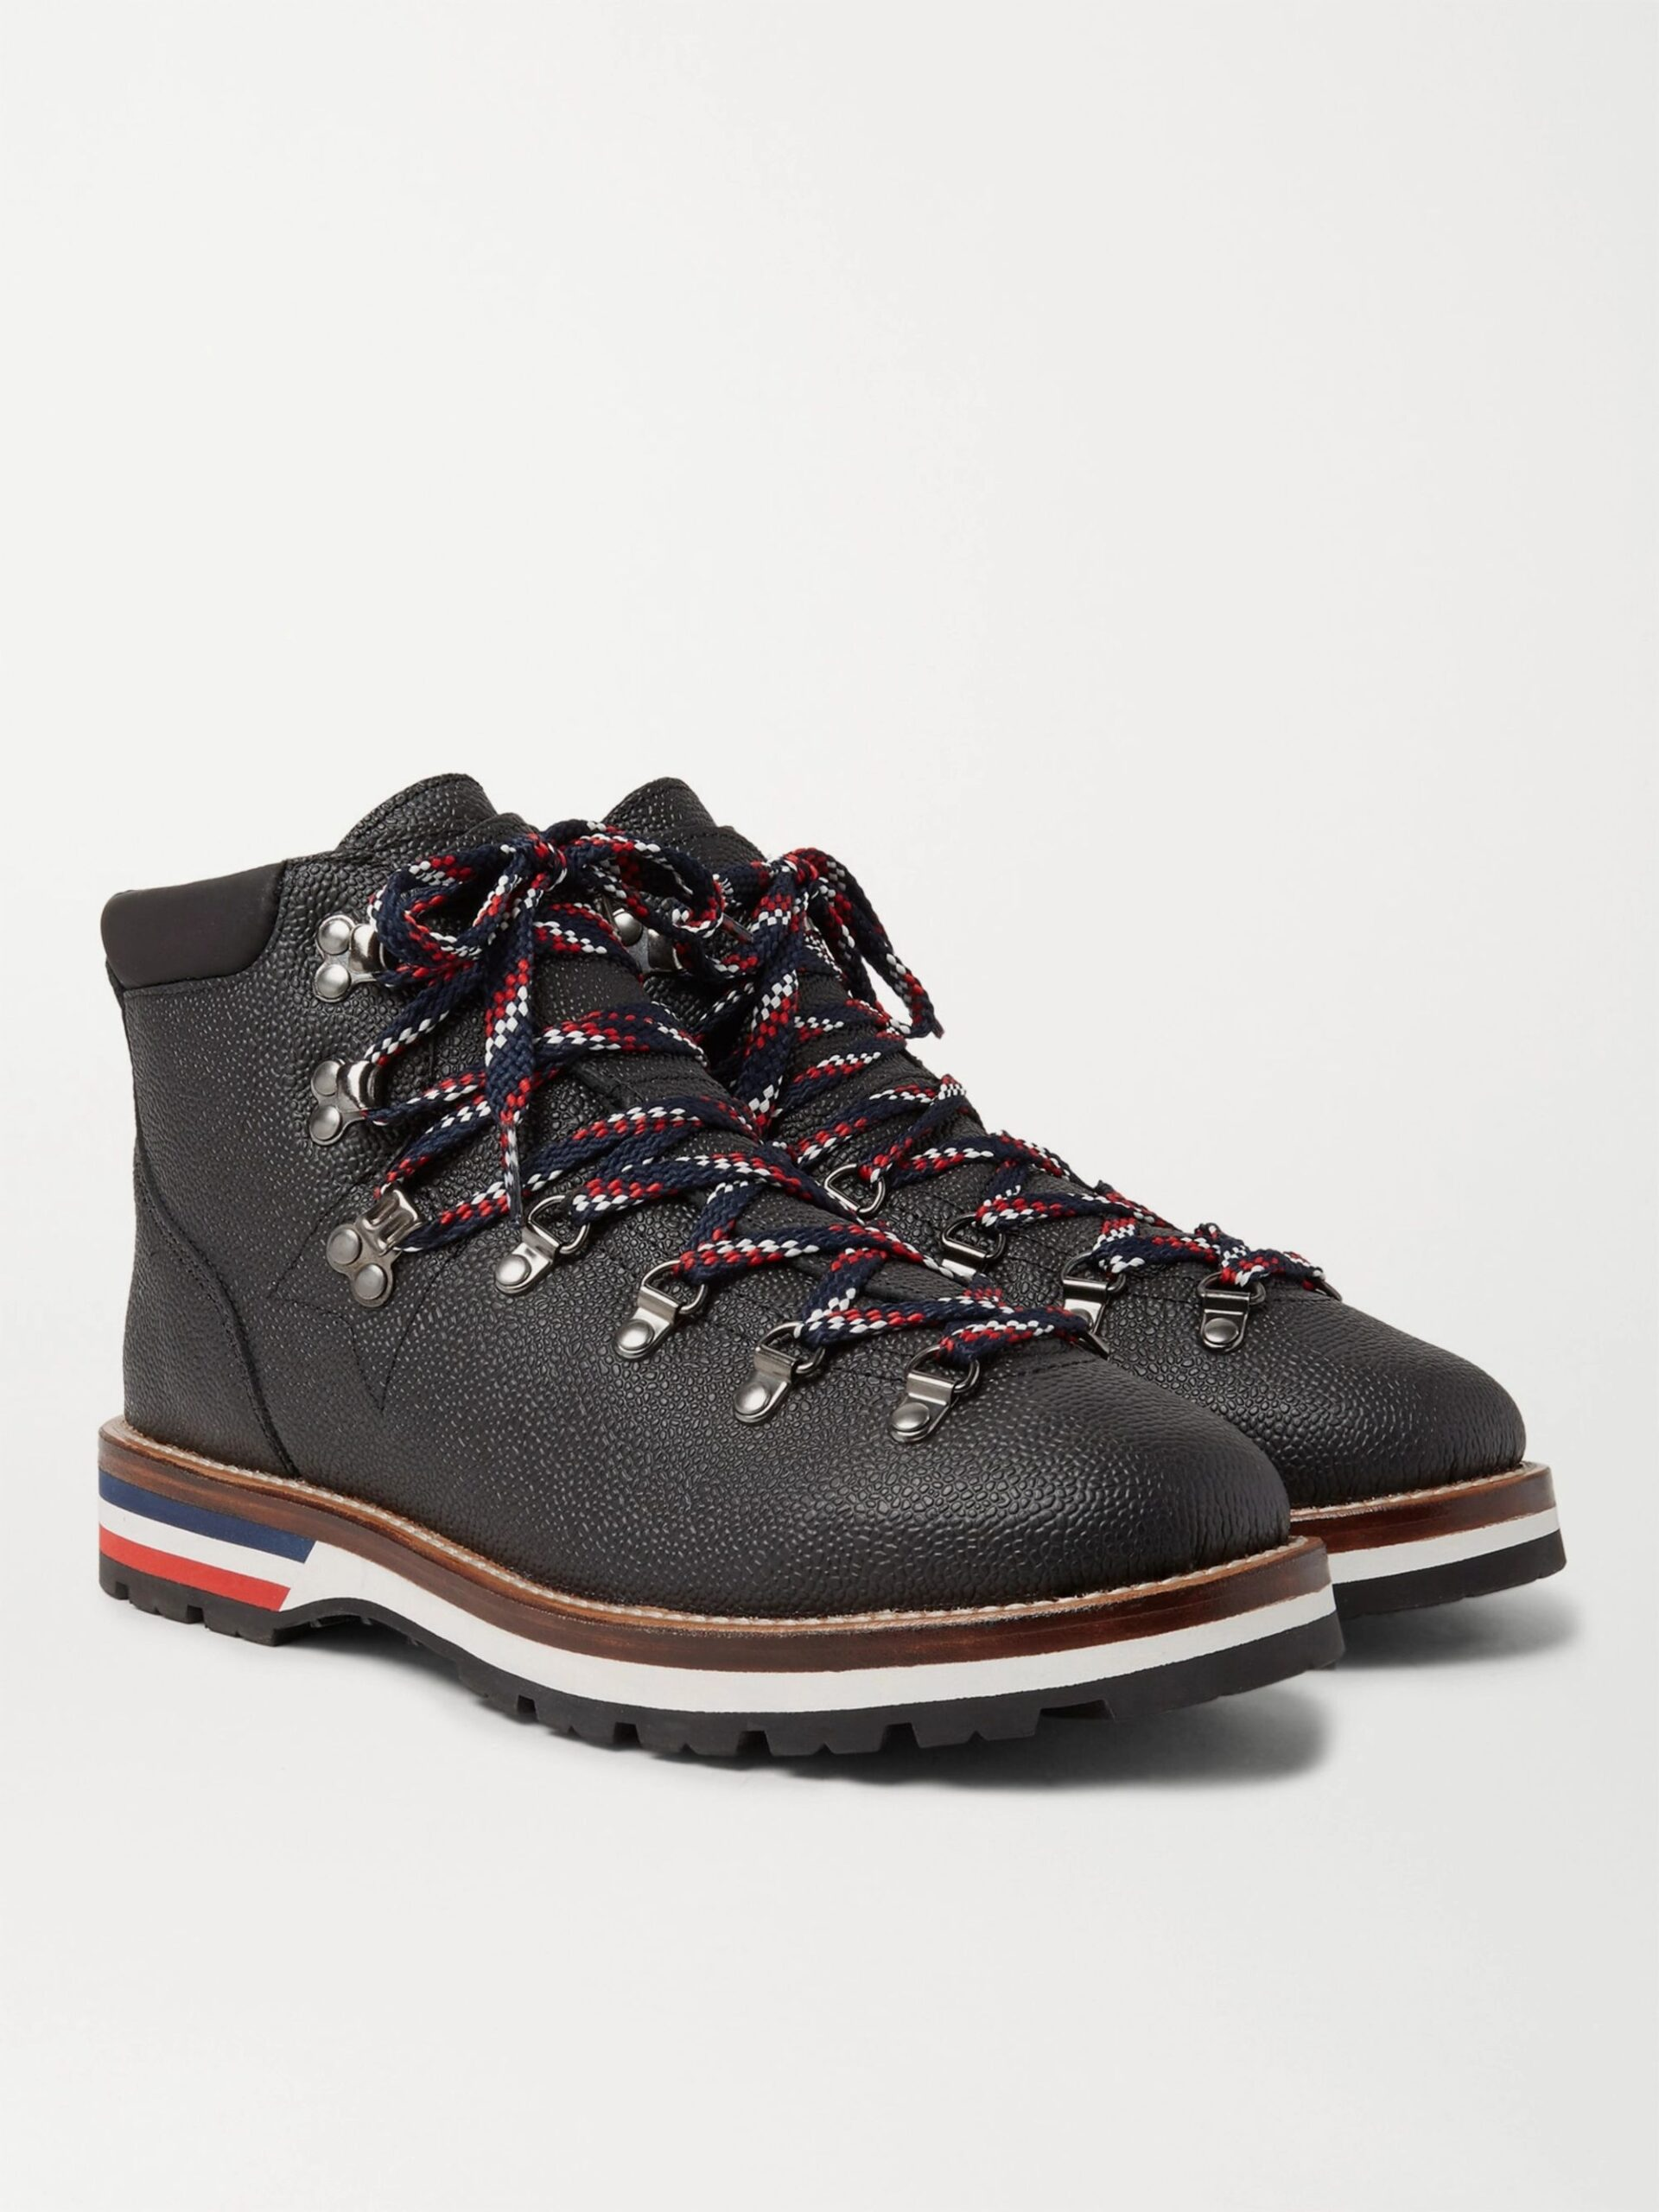 boots fashion for hiking